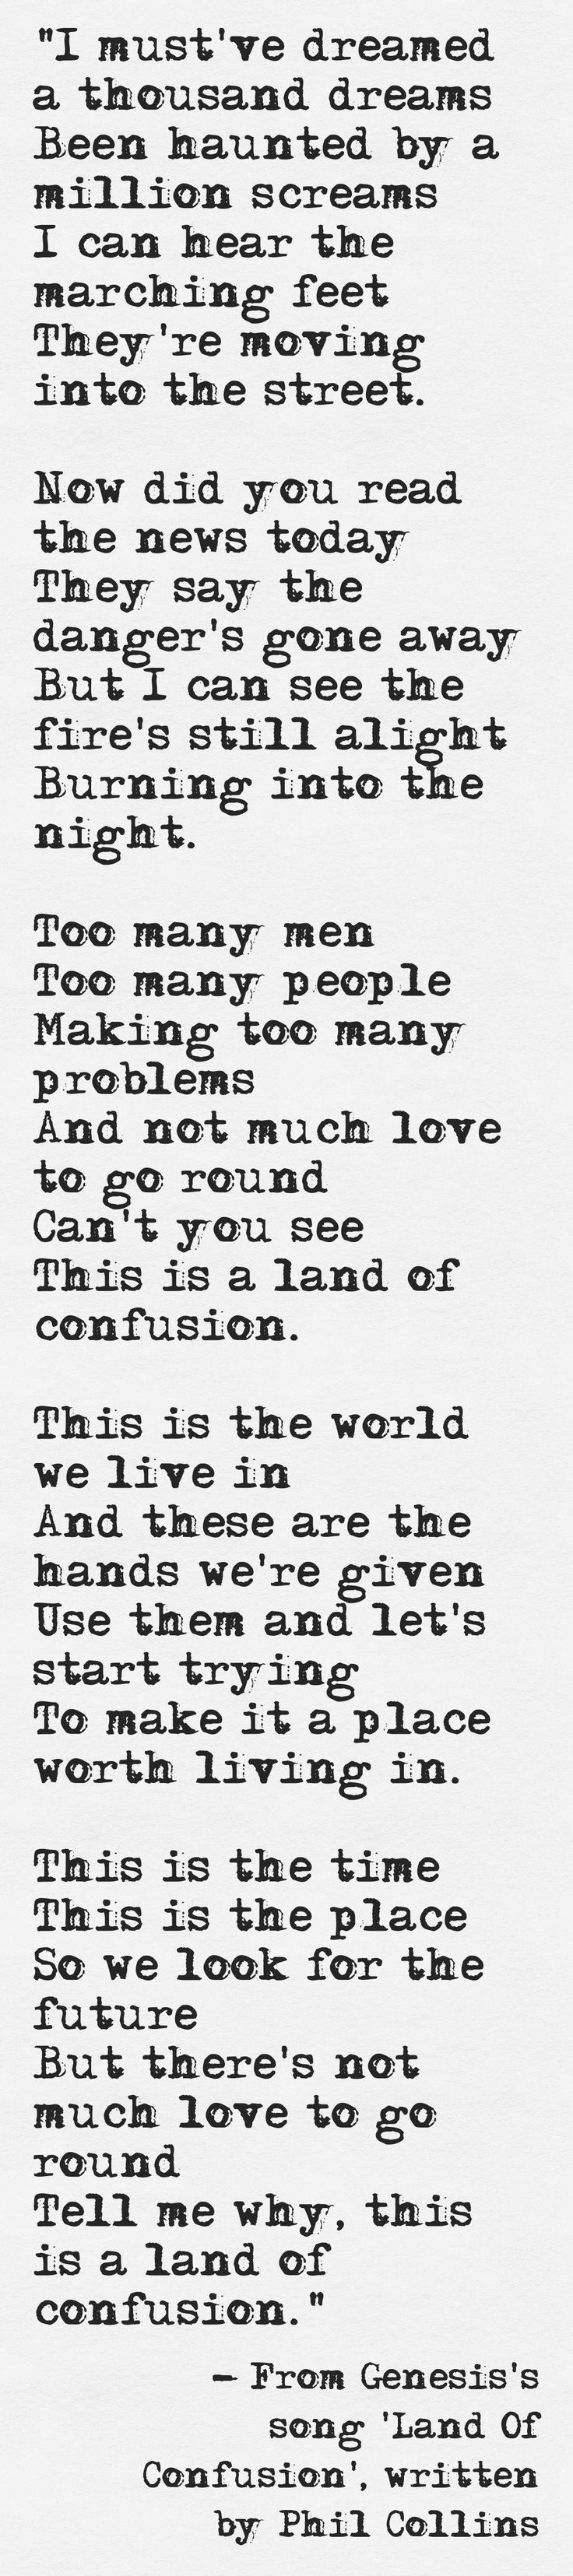 Lyrics from Genesis's song 'Land Of Confusion', written by Phil Collins | http://www.humancondition.com